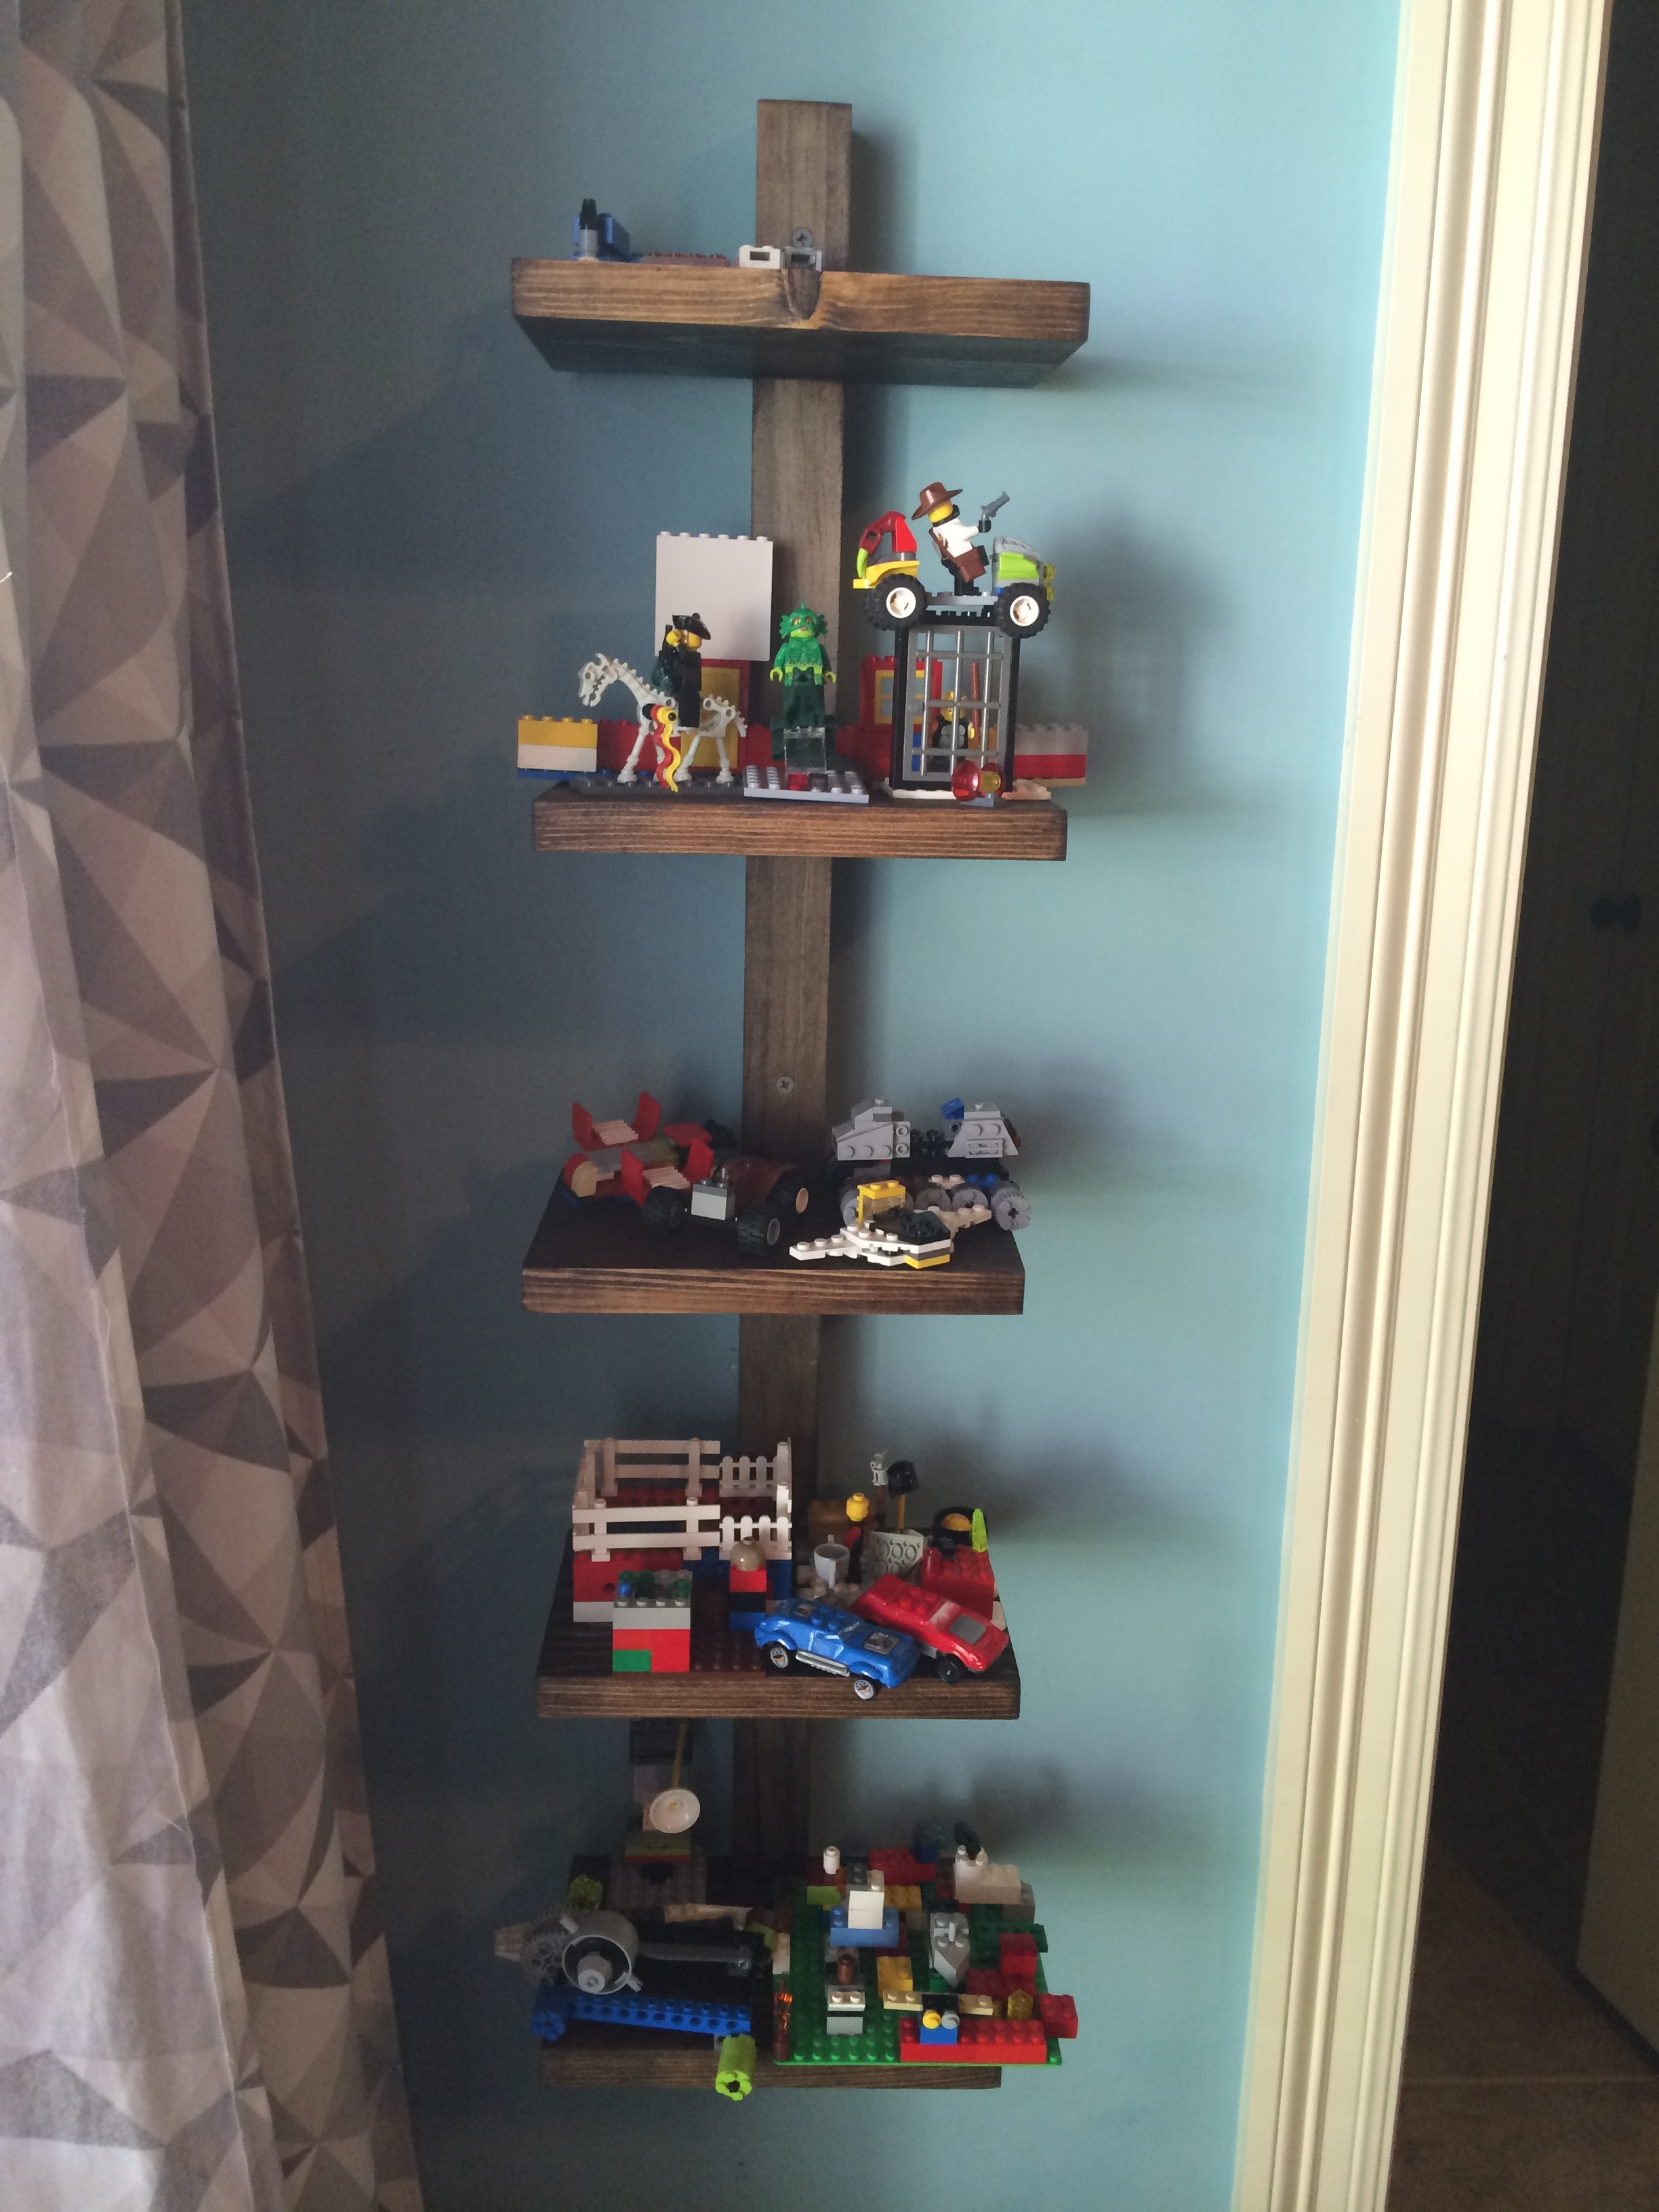 display bedroom shelves best lego shelf ideas ana white diy projects floating for mantel height shoe storage rack with baskets oak wall mounted desk sleeper mantle file bathroom